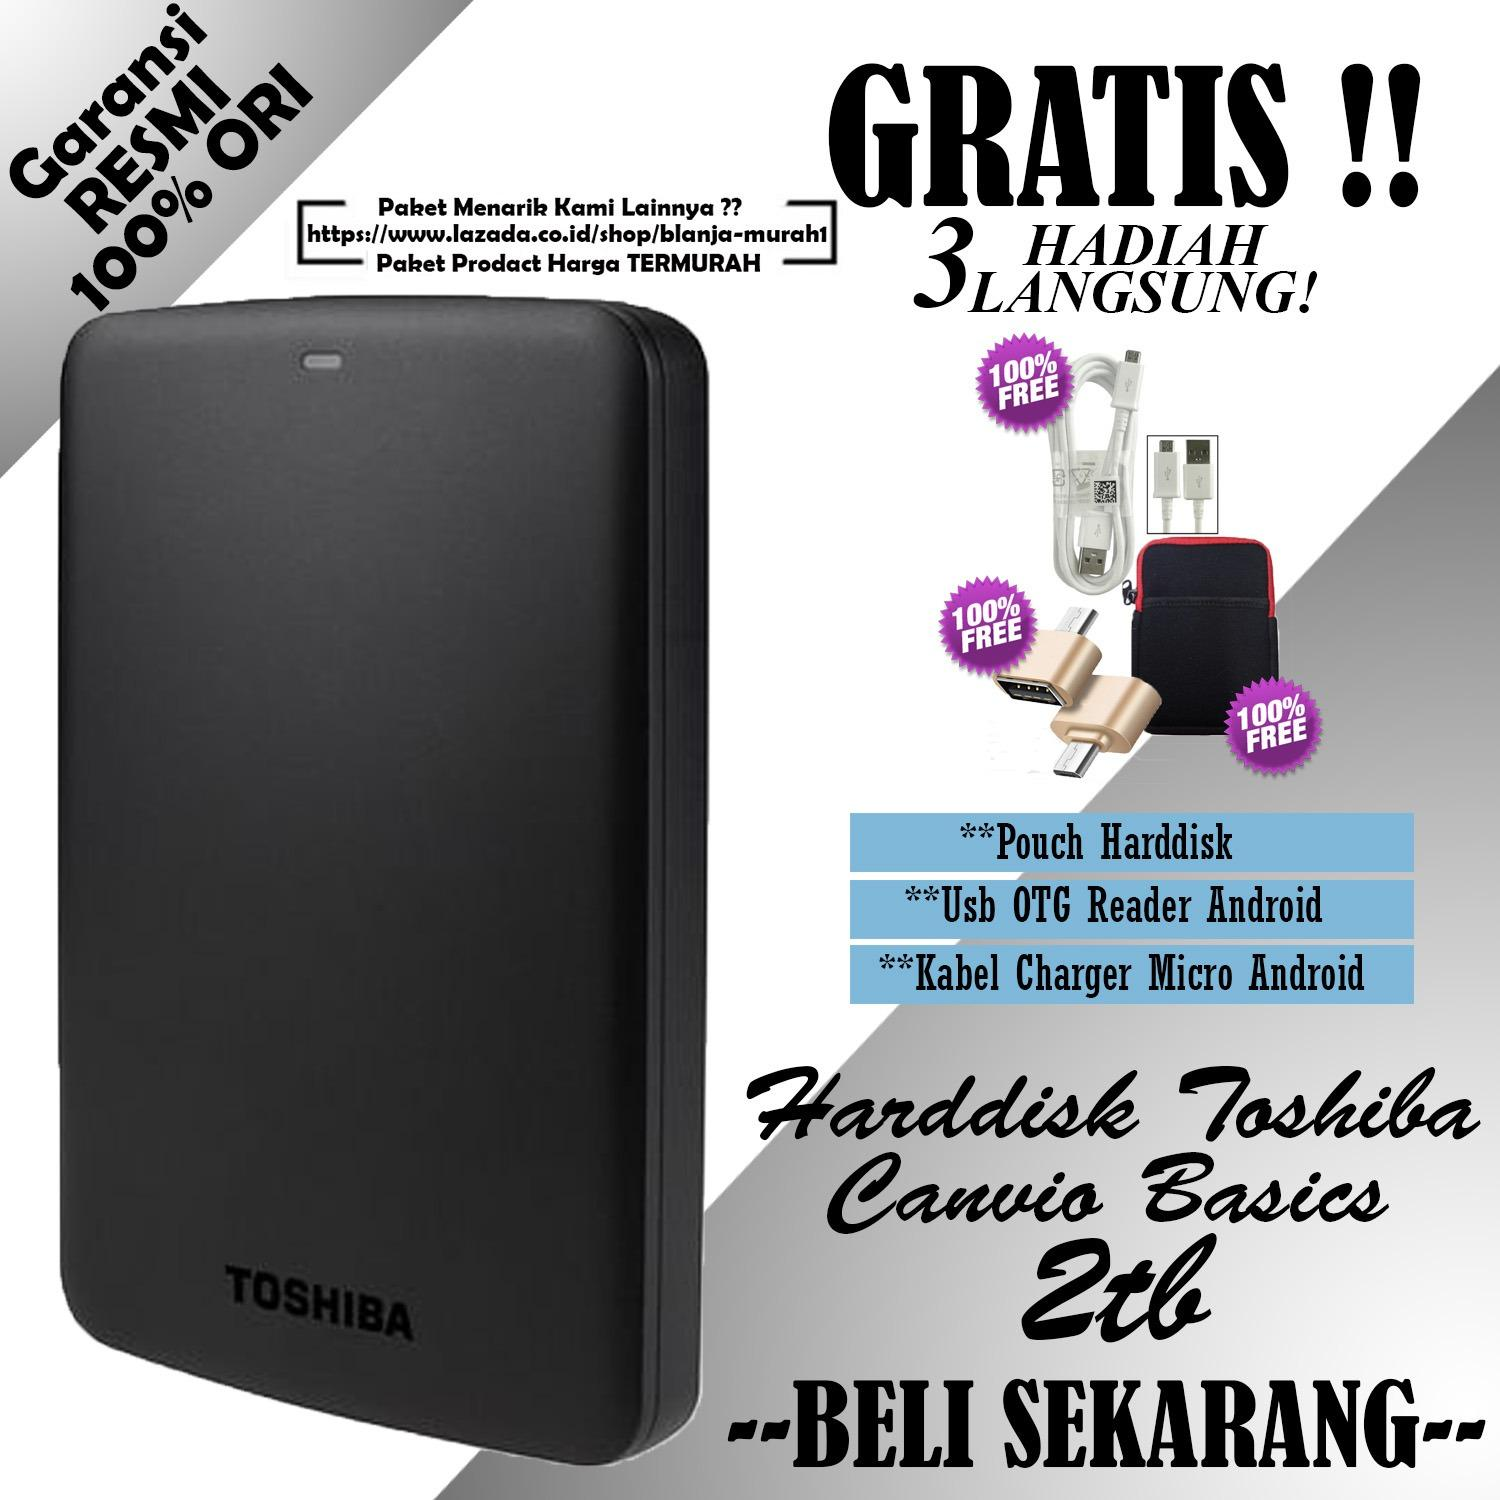 Toko Toshiba Canvio Basics 2Tb Hdd Hd Hardisk Eksternal Black Gratis Pouch Harddisk Ext Usb Otg Reader Android Kabel Charger Micro Android Termurah Di Dki Jakarta